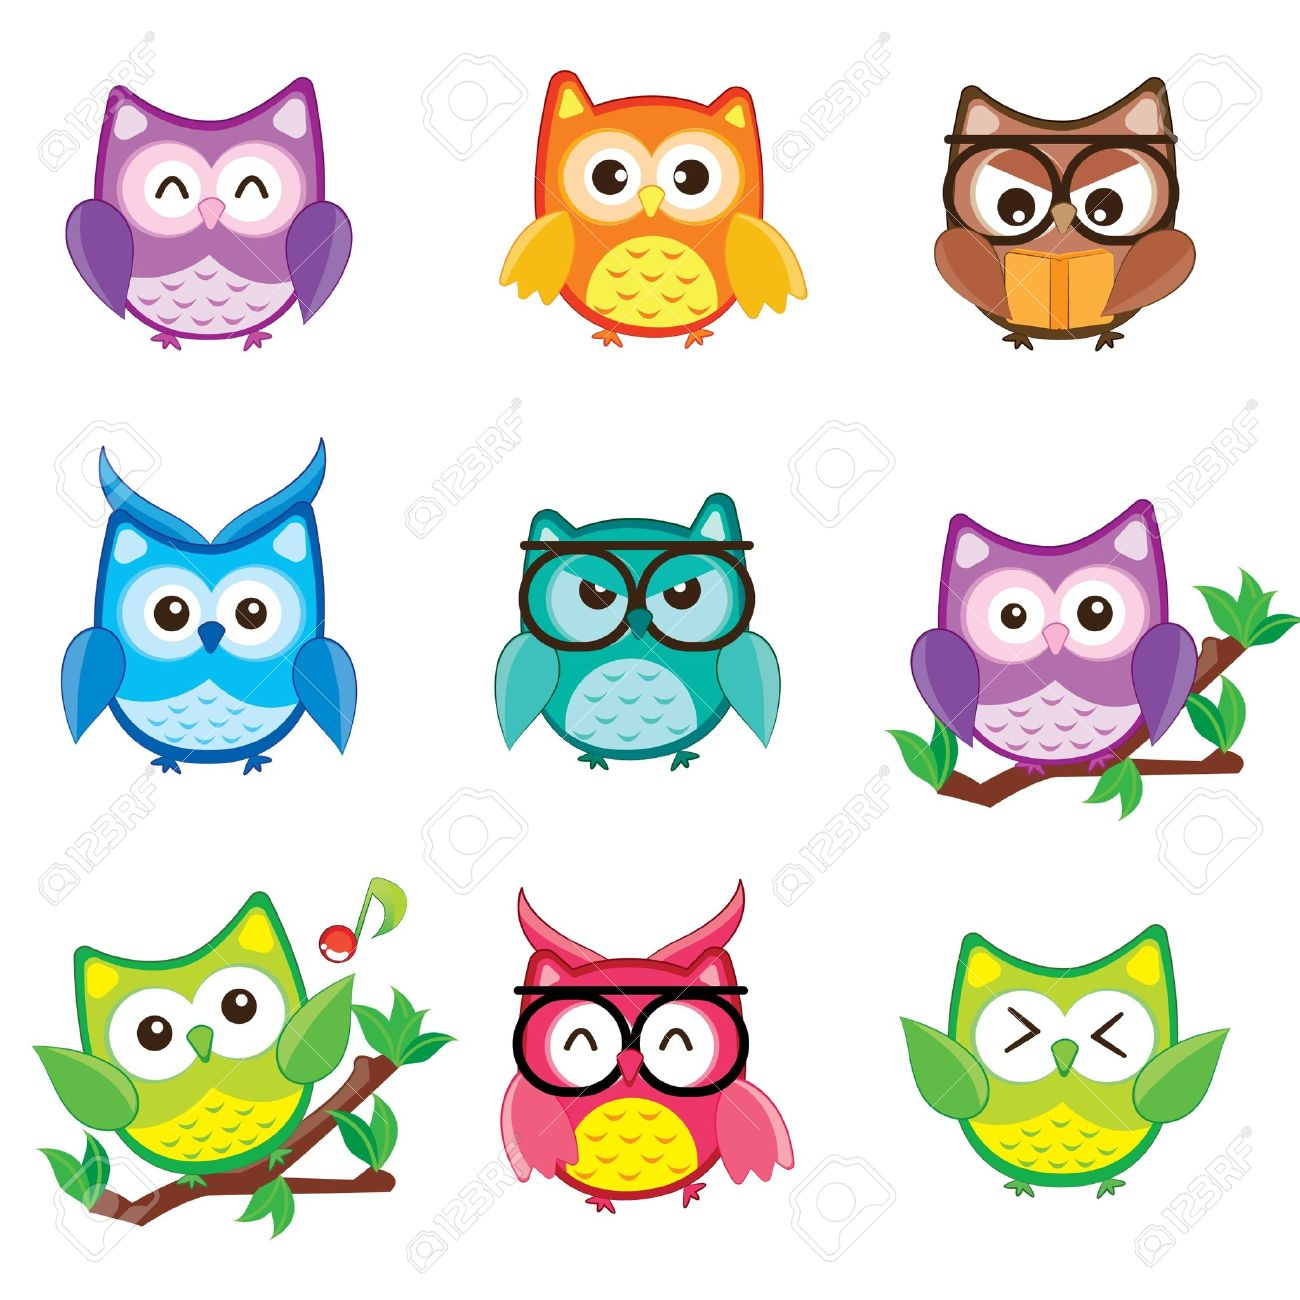 19,547 Cute Owl Stock Vector Illustration And Royalty Free Cute ...